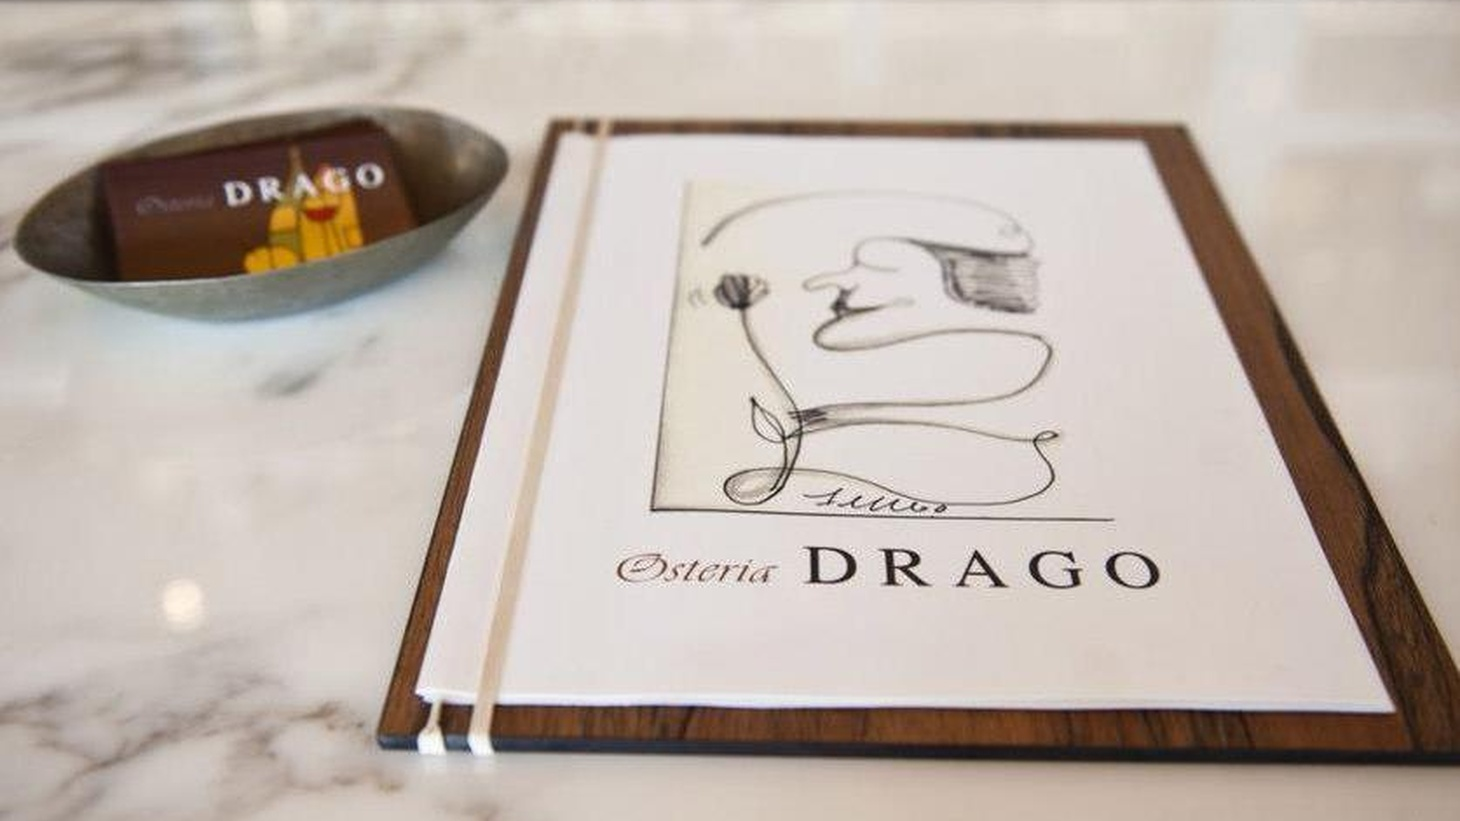 Jonathan Gold visits Osteria Drago located on the Sunset Strip in West Hollywood.